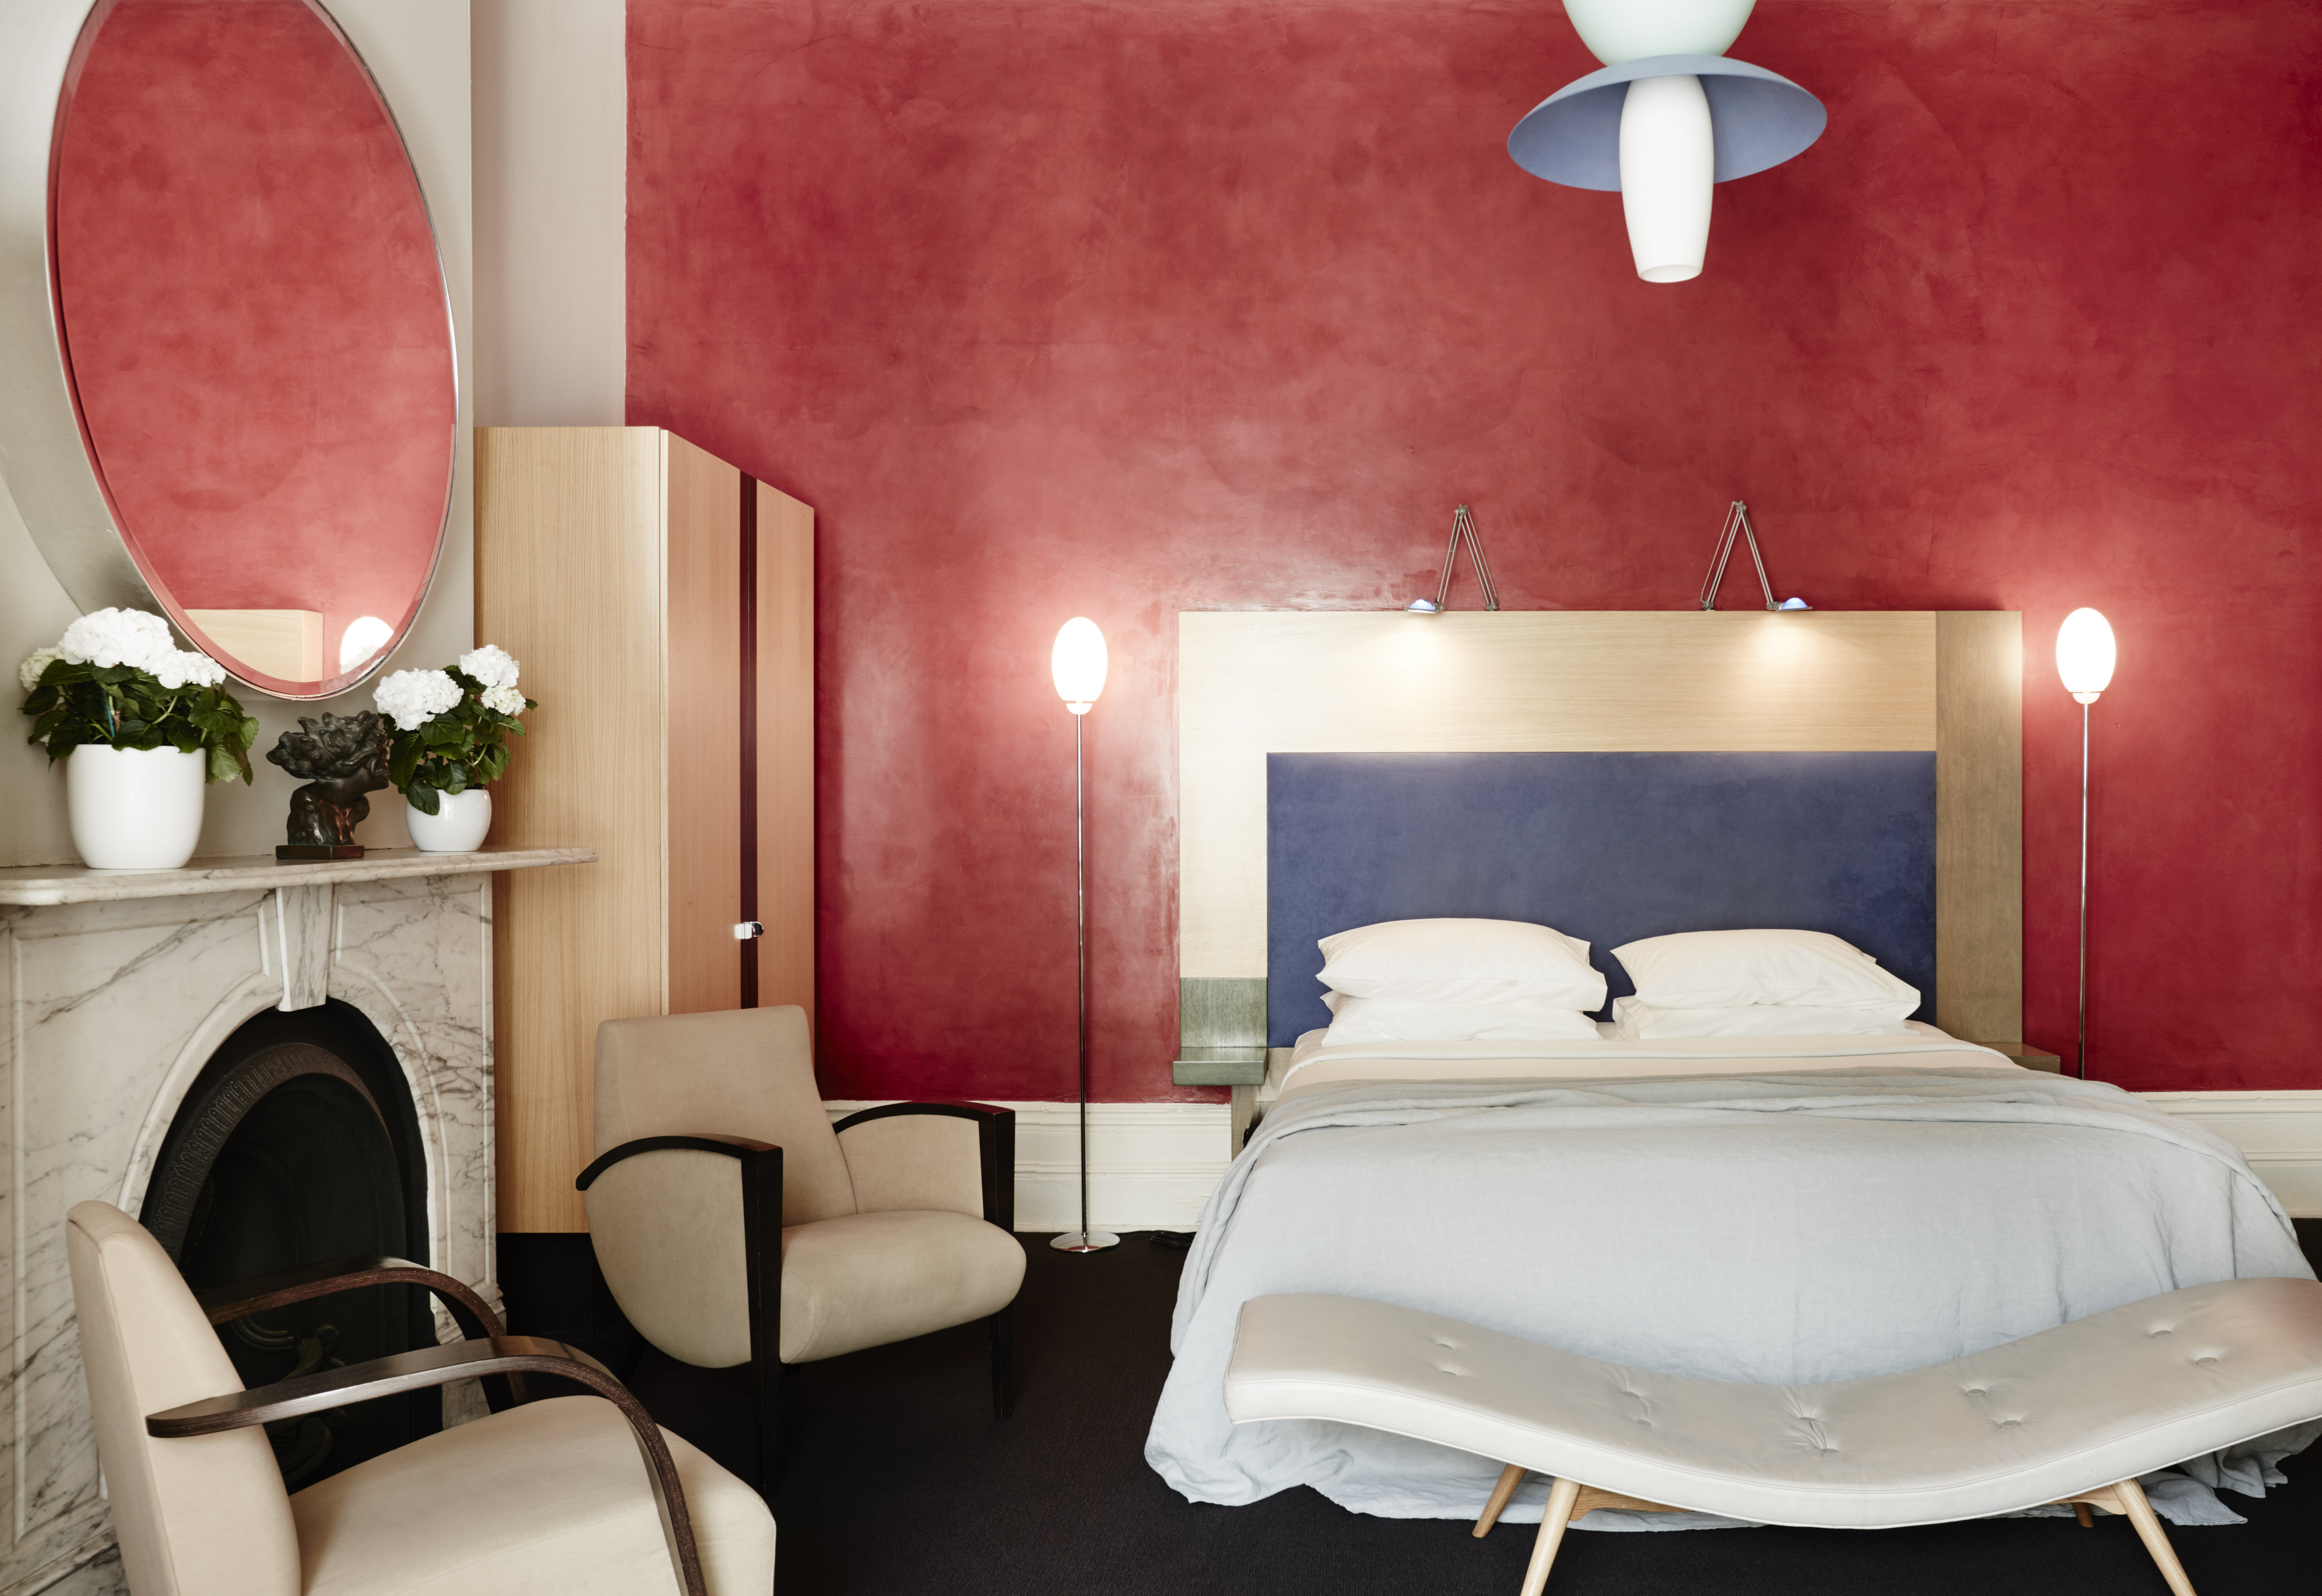 MEDUSA HOTEL IS A HOME AWAY FROM HOME STAY